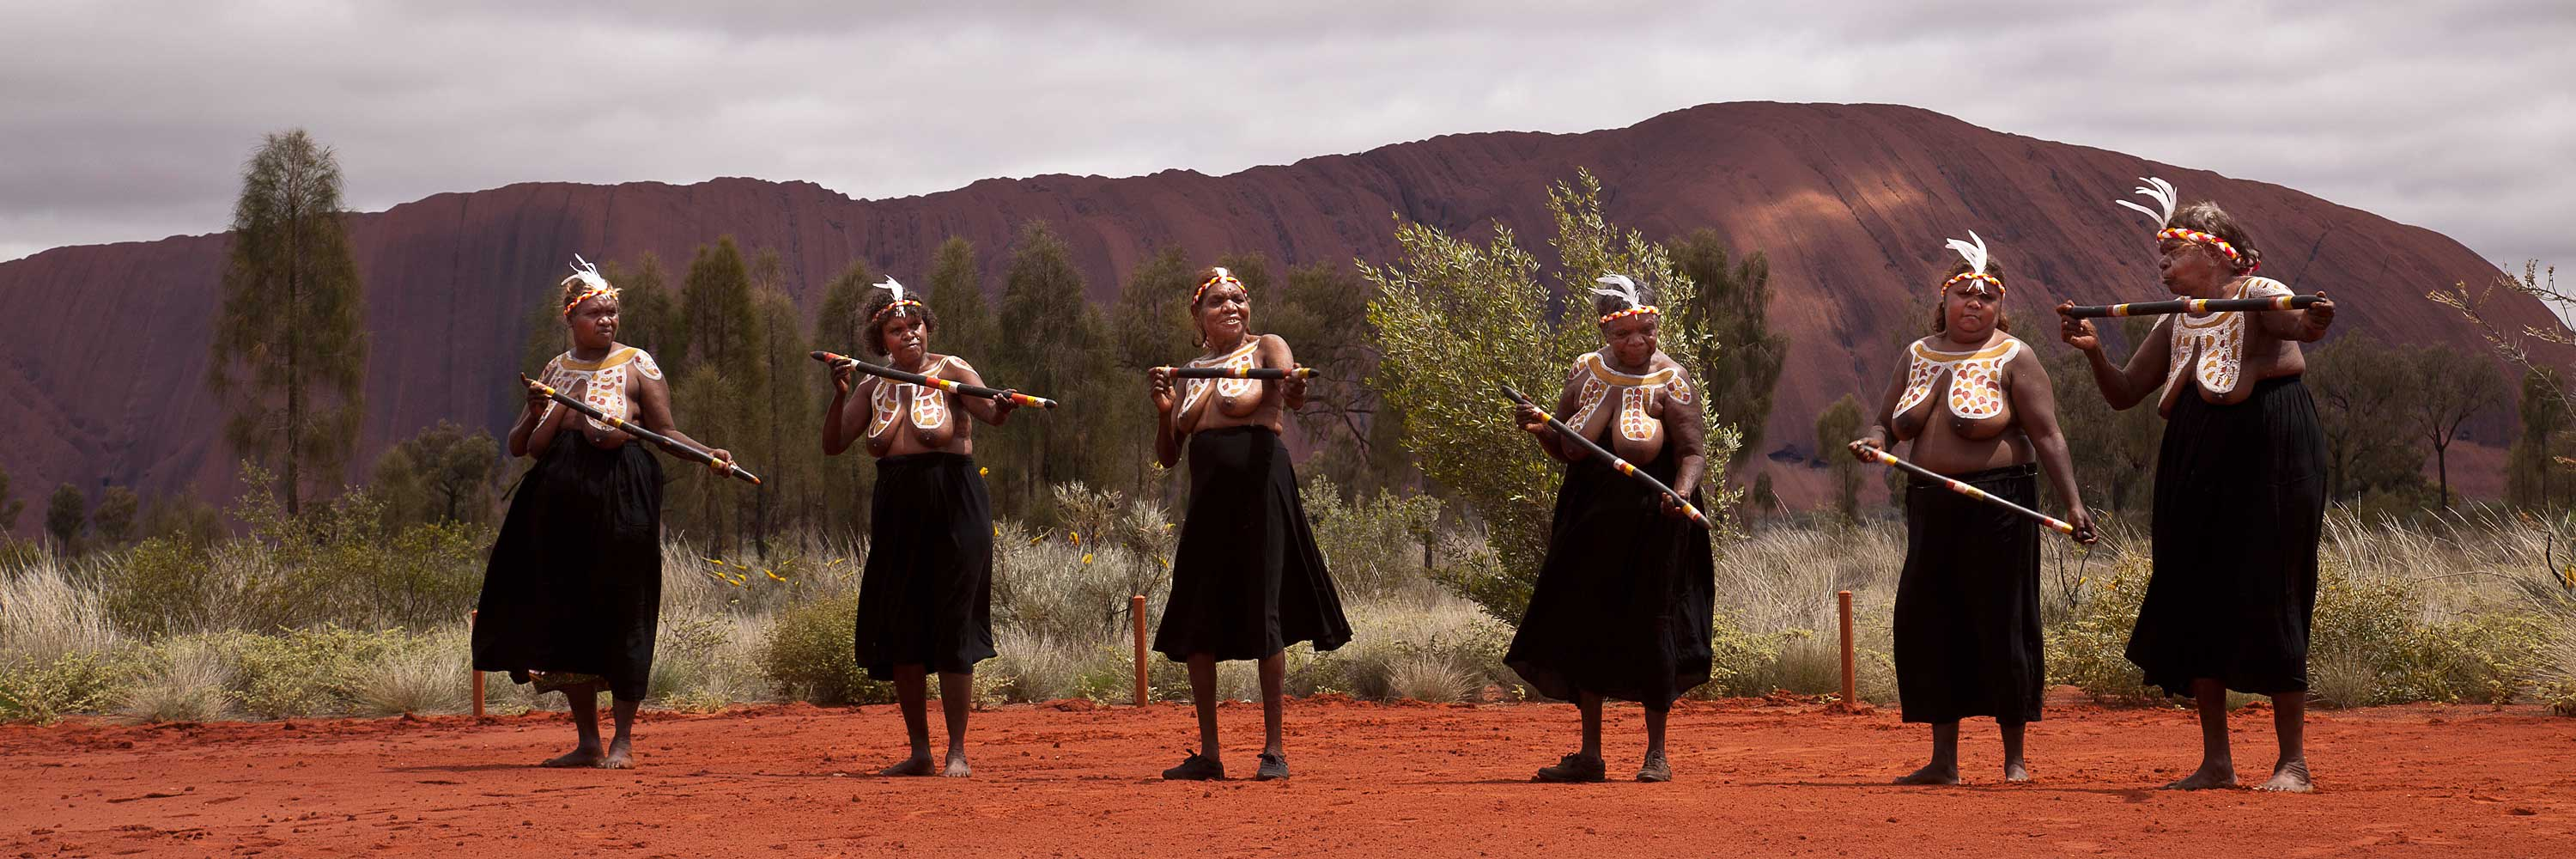 Traditional dances, Uluru-Kata Tjuta National Park